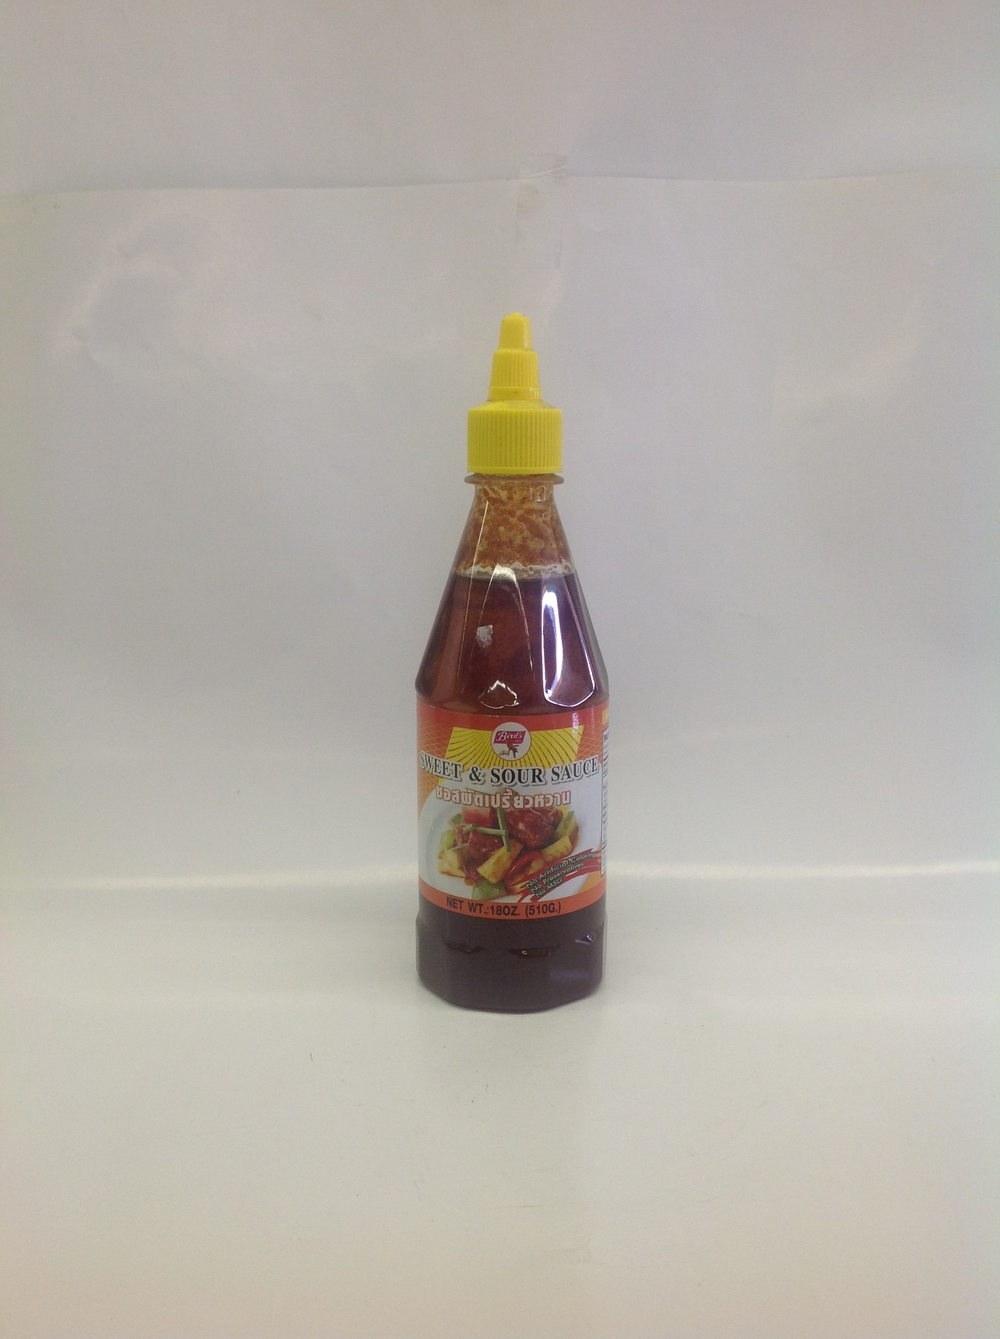 Sweet and Sour Sauce   Bird's   SA17185 12x18 oz